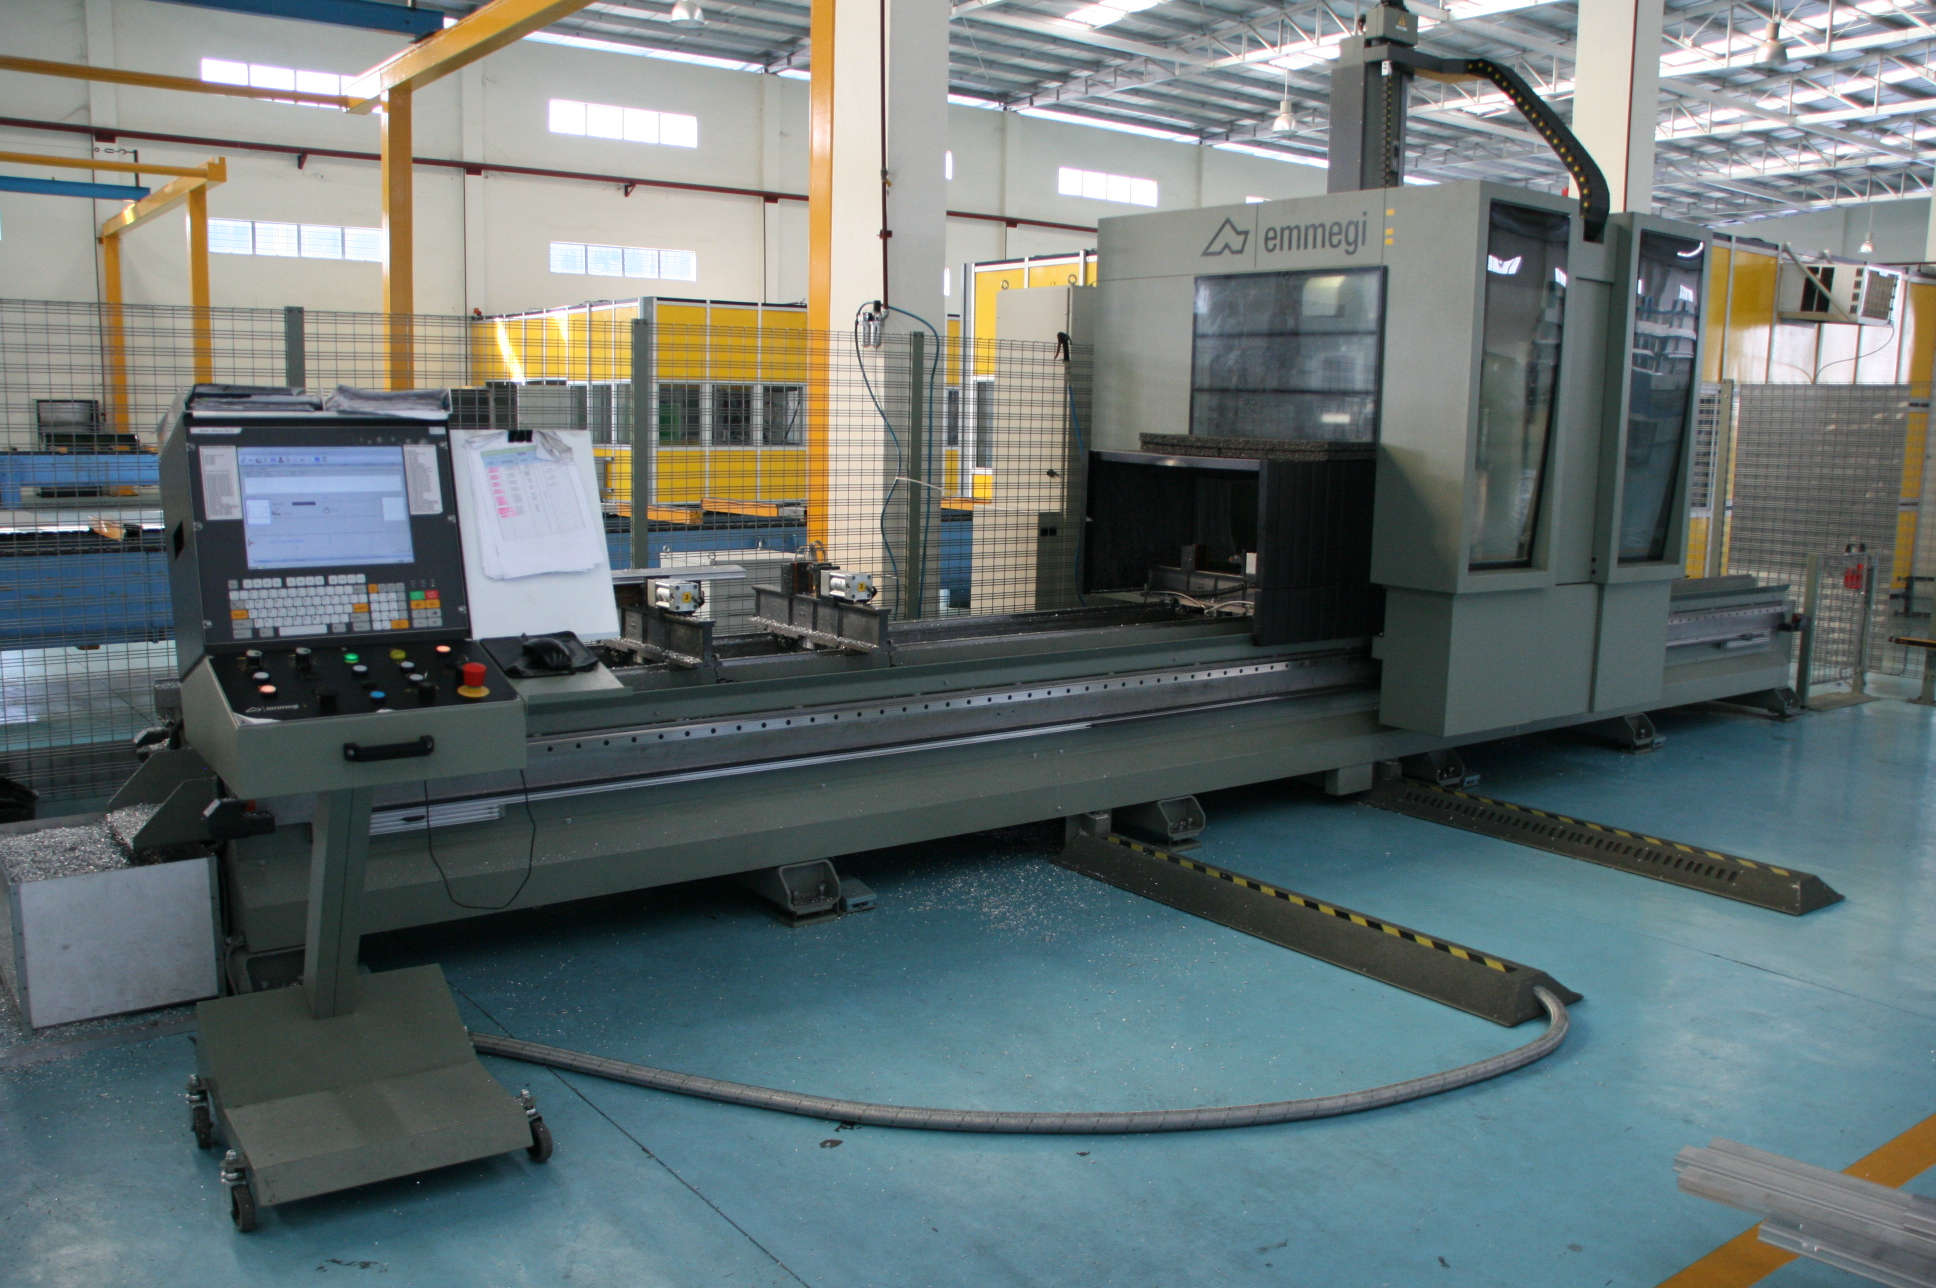 satellite cnc 5 axis